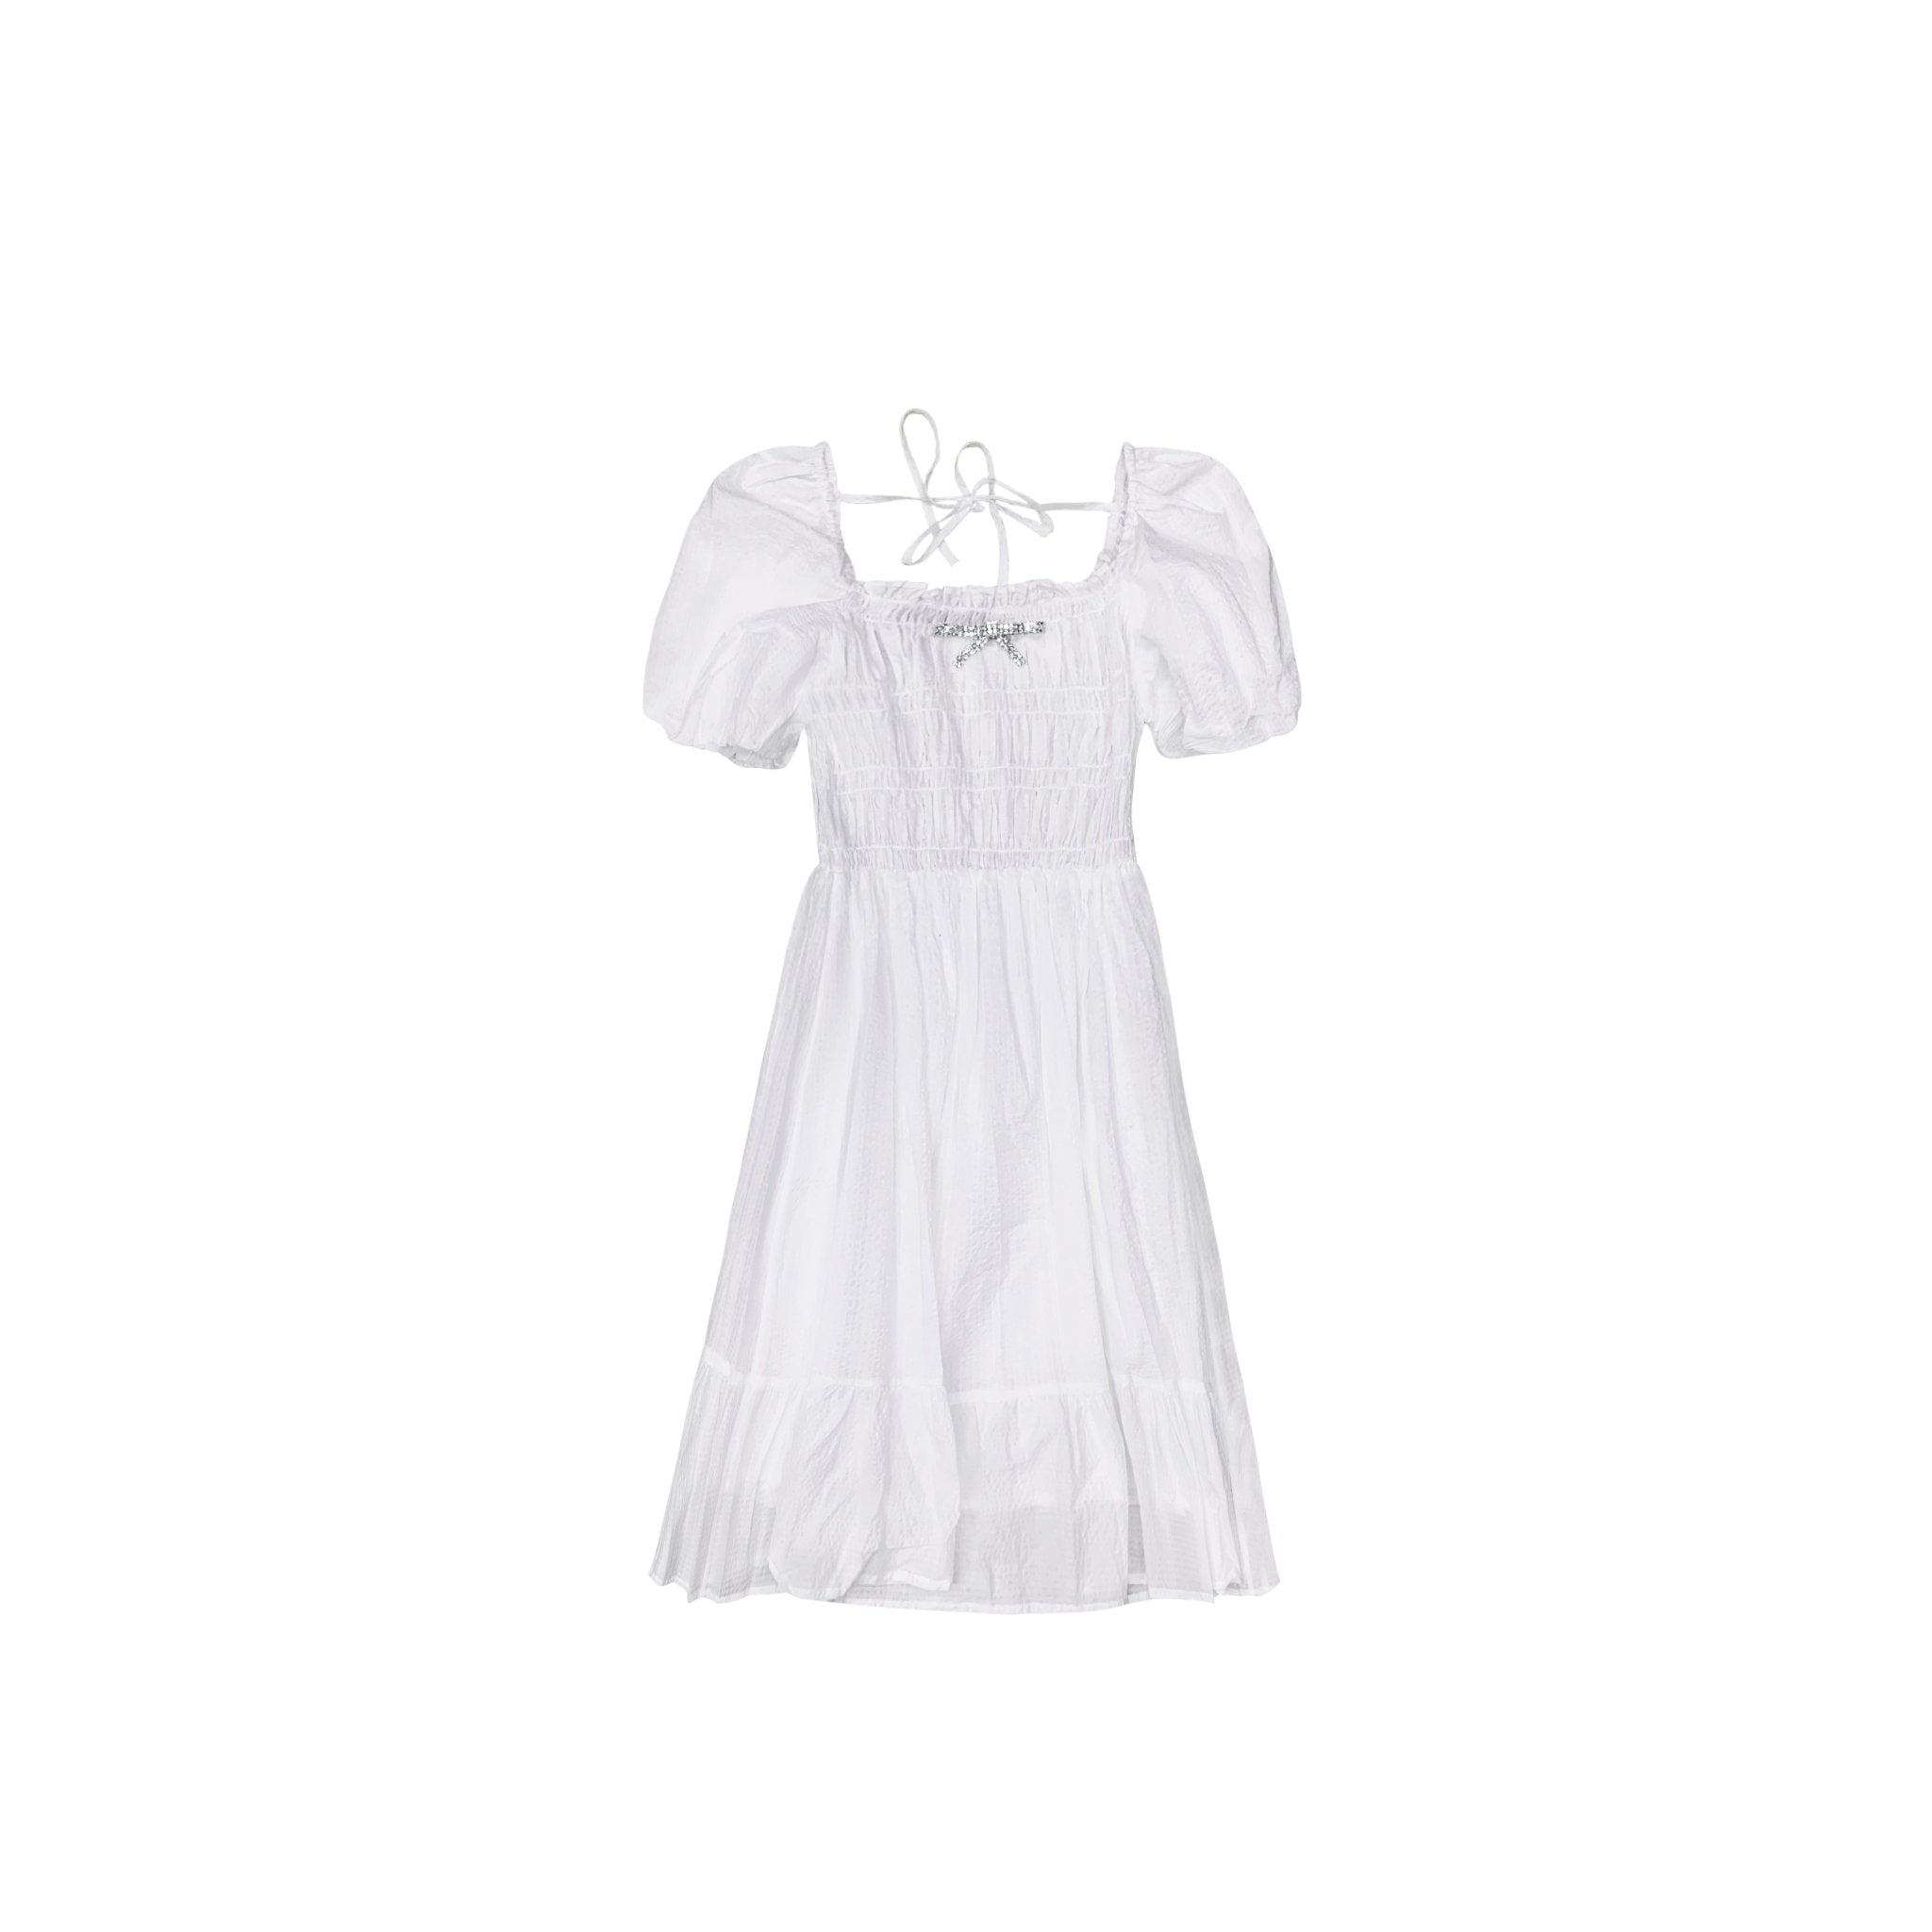 AIMME SPARROW White Bowtie Bubble Dress | MADA IN CHINA